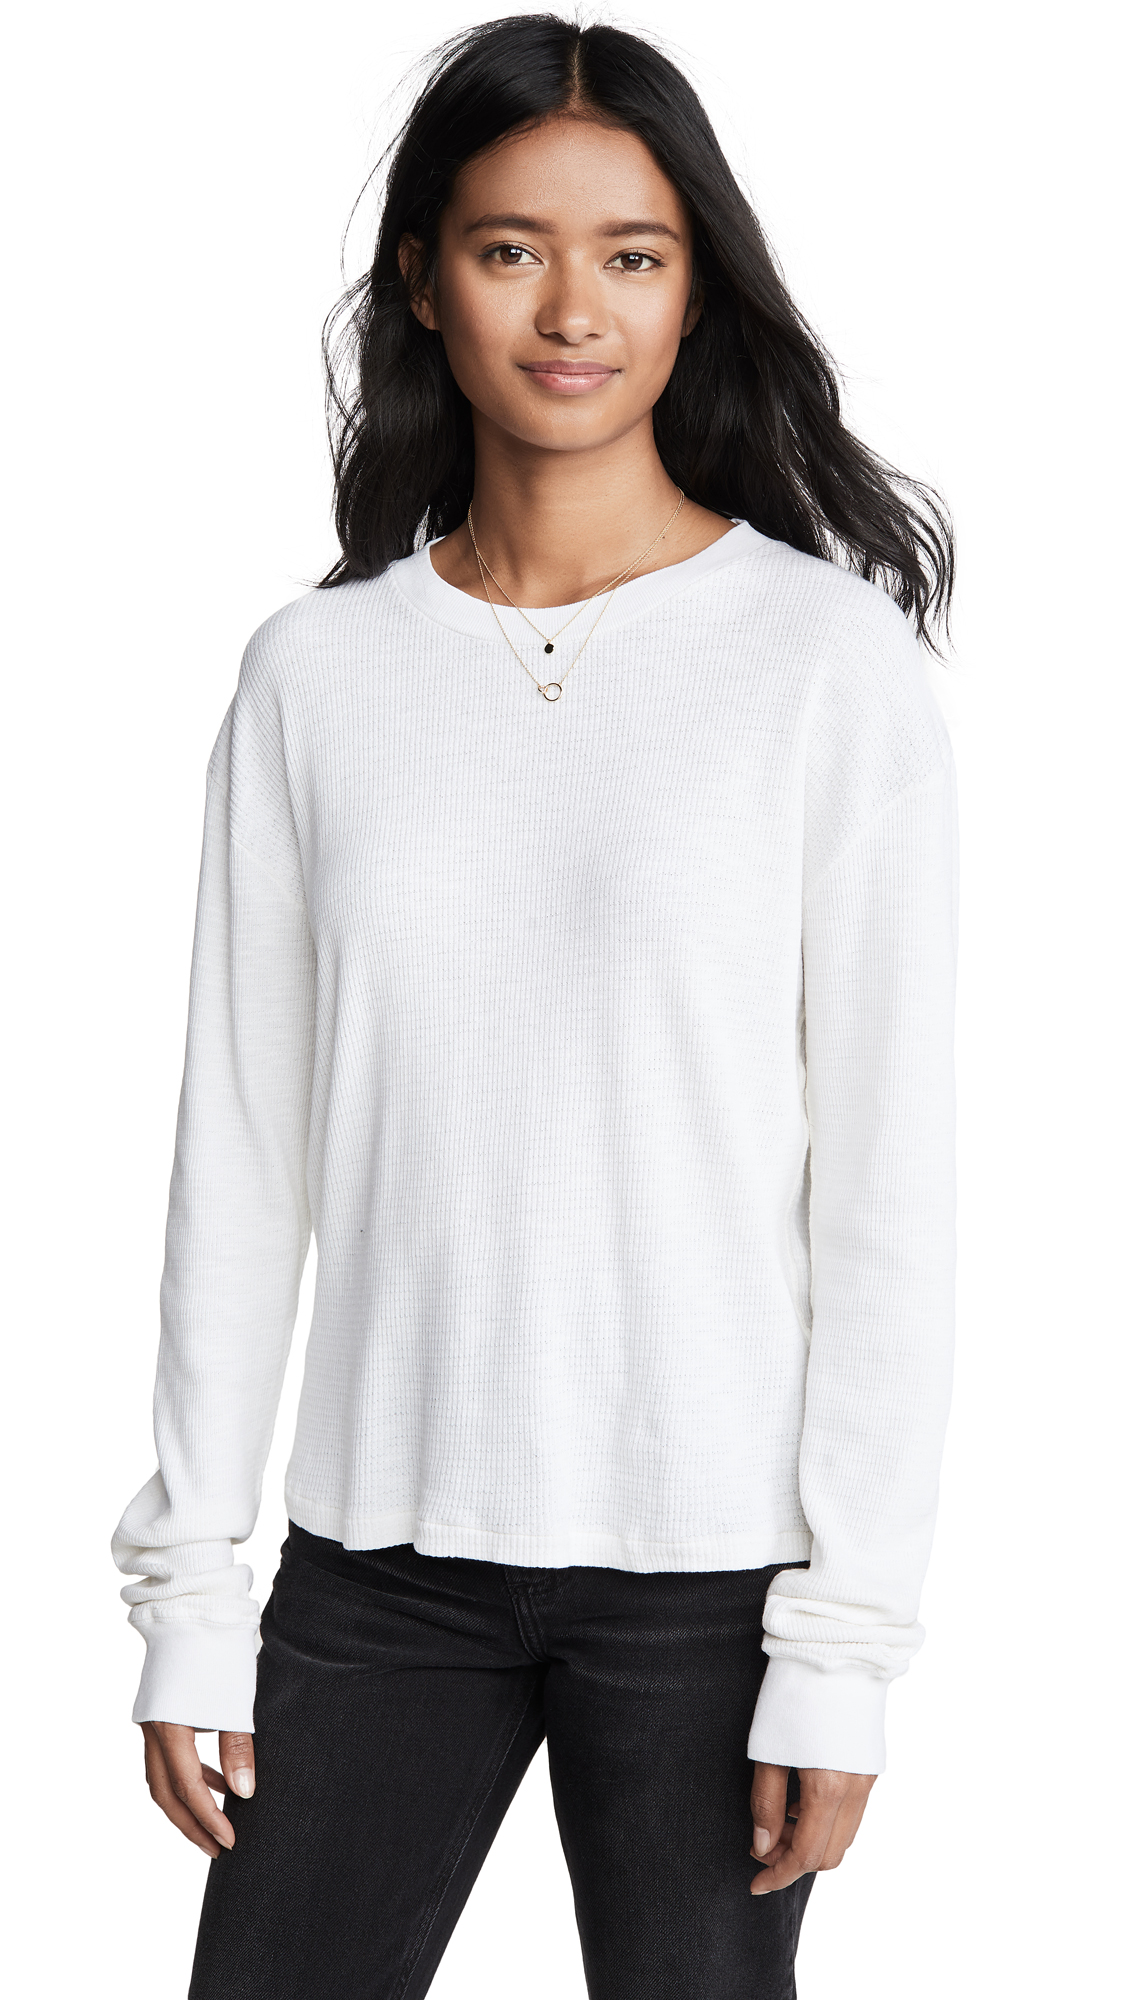 RE/DONE Thermal Long Sleeve T-Shirt